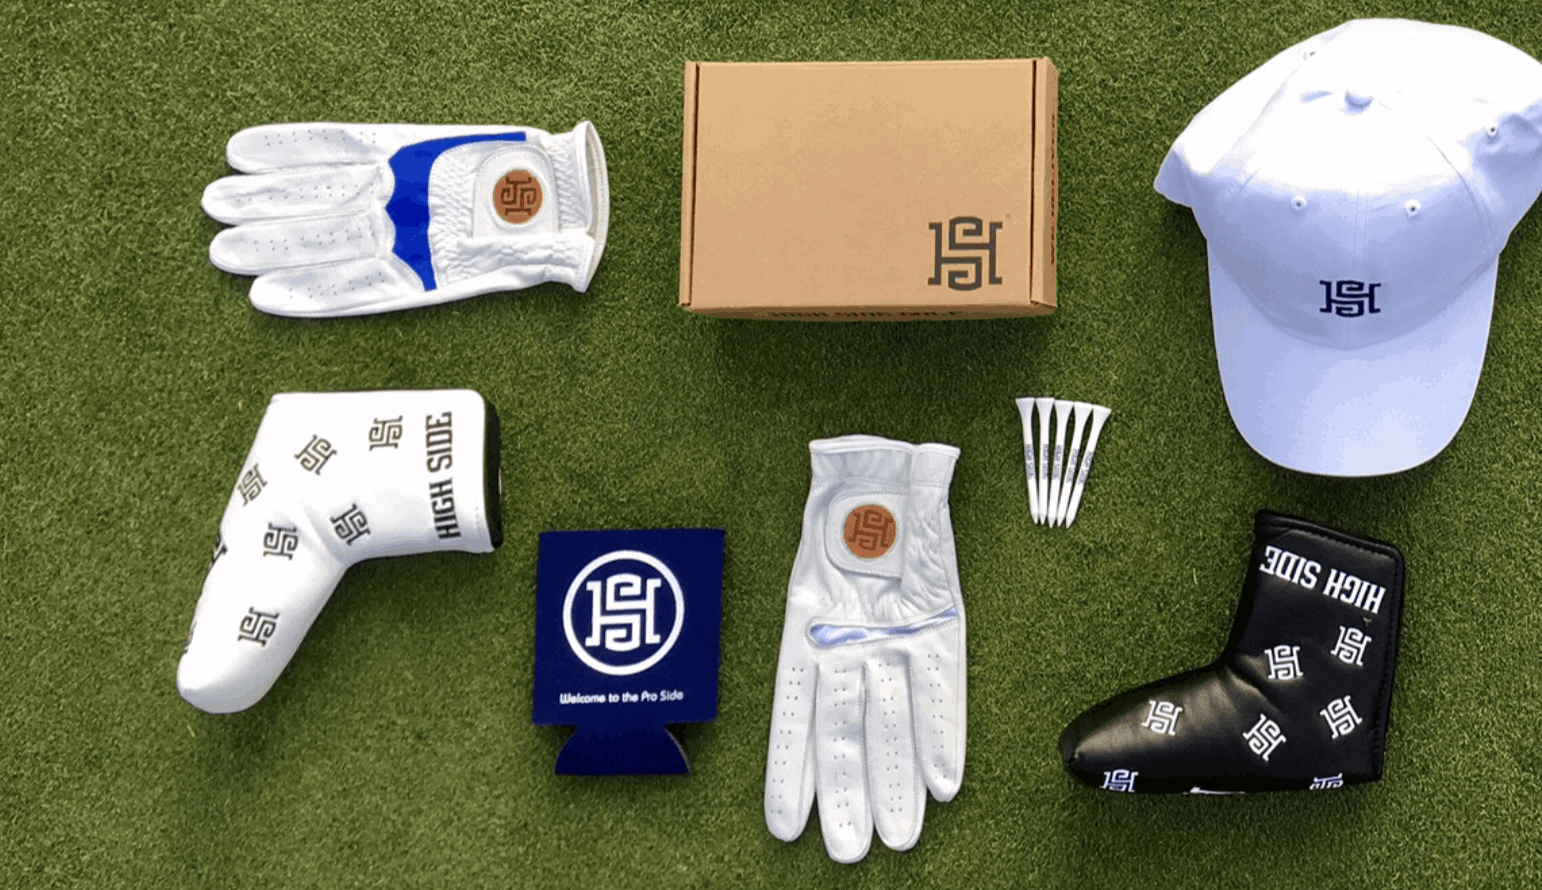 e7e1da489fd09 8 Best Golf Subscription Boxes - Urban Tastebud